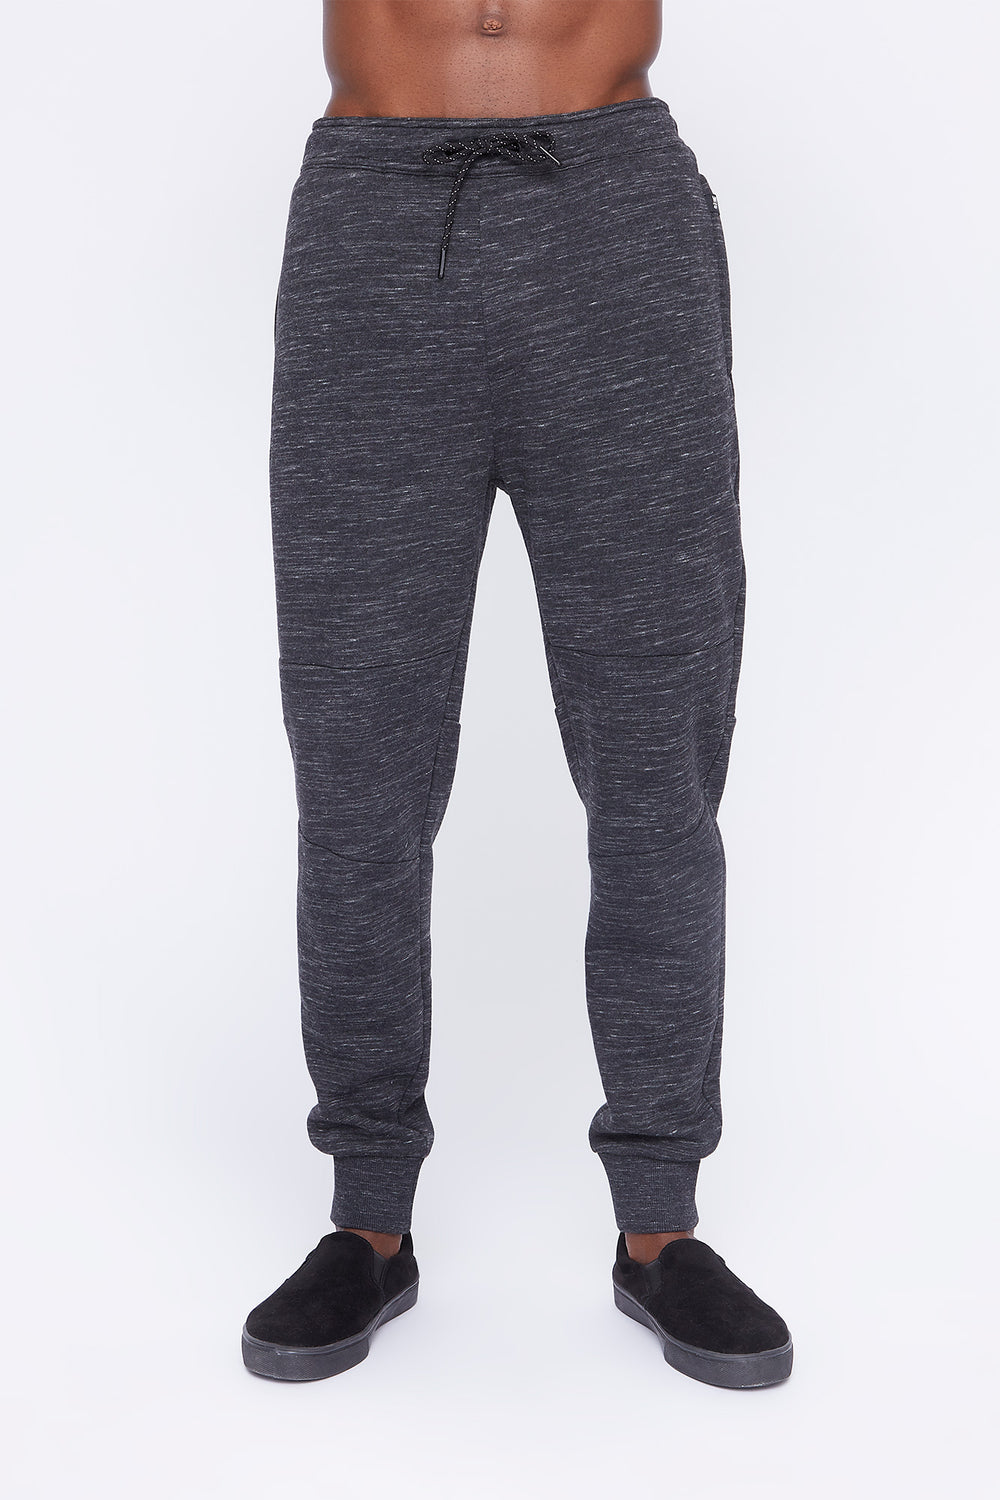 West49 Mens Spacedye Jogger Charcoal